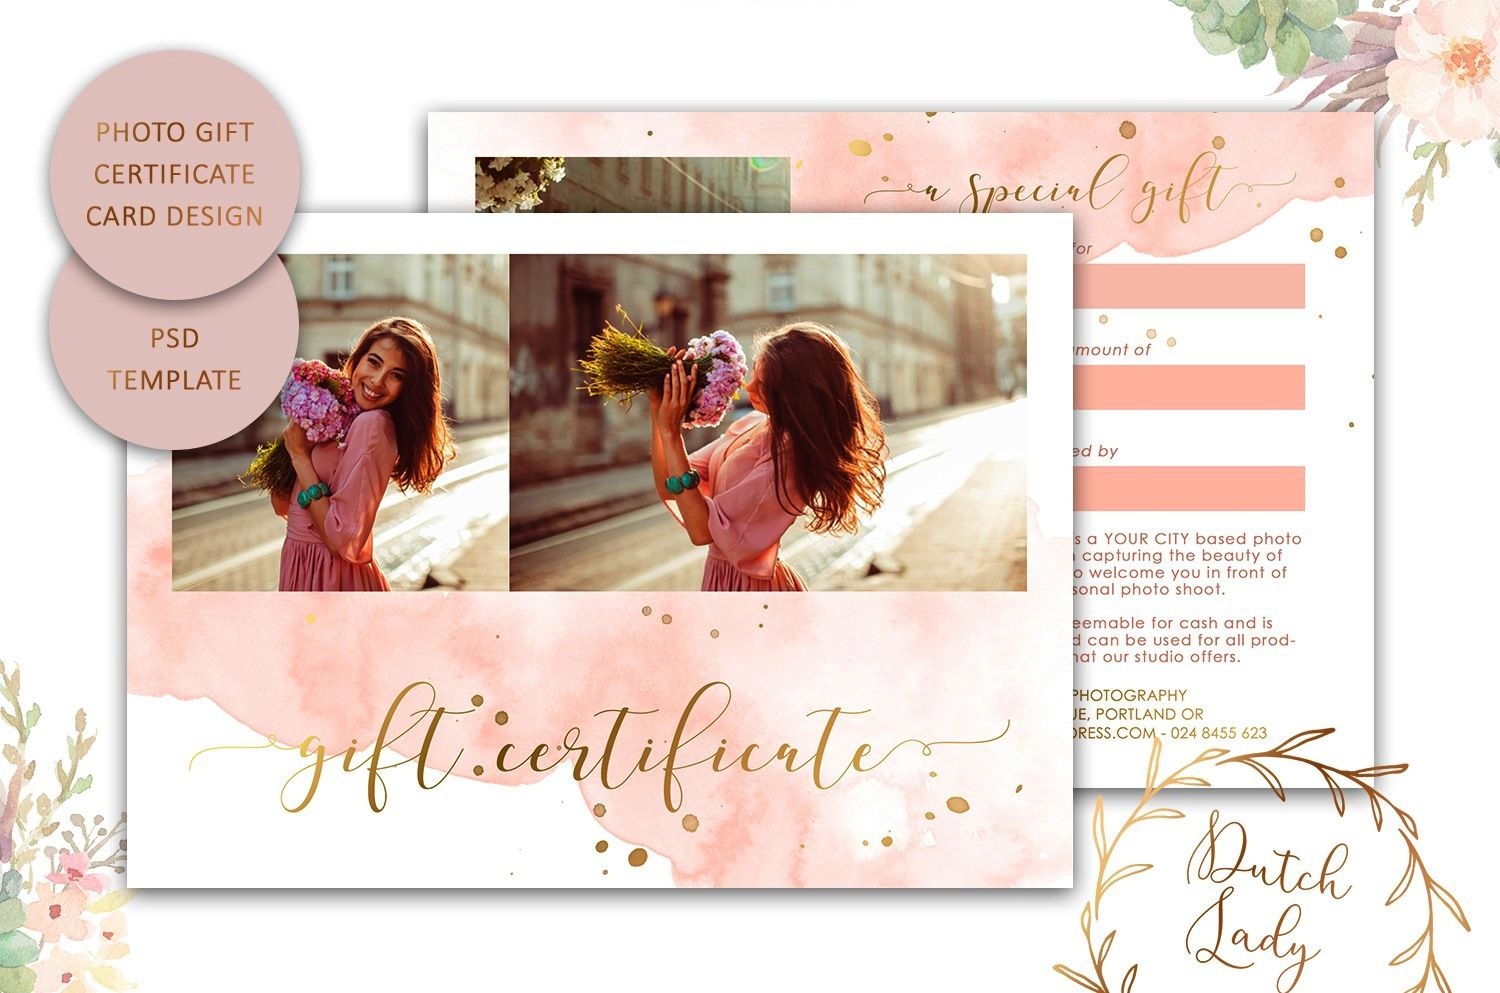 009 Top Photography Session Gift Certificate Template Picture  Photo Free PhotoshootFull